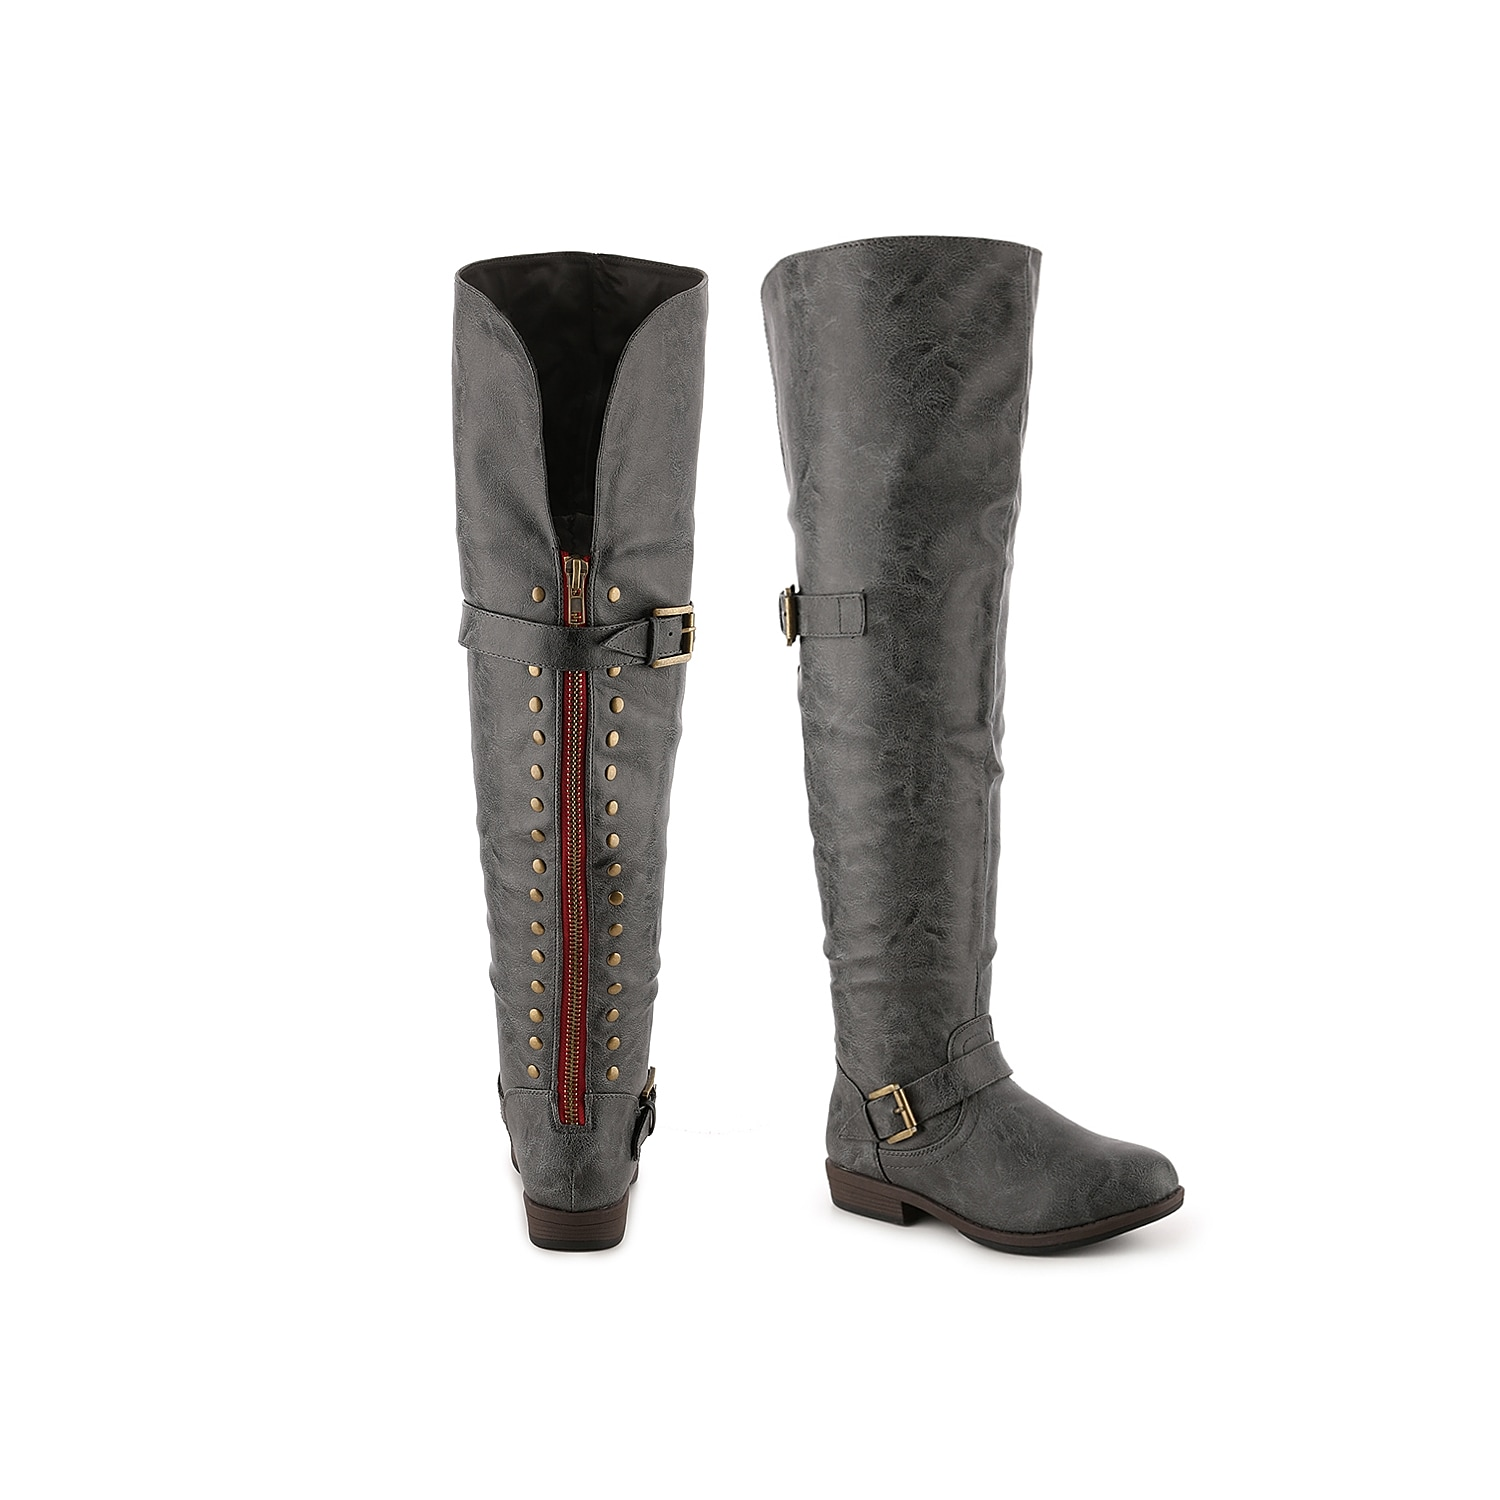 With a hidden cell phone pocket and faux fur lining, the Kane by Journee Collection will be your go-to knee high boot for fall. This studded over the knee boot has a color lined zipper and a buckle accent, that adds just the right amount of edge you\\\'re looking for.Click here for Boot Measuring Guide.